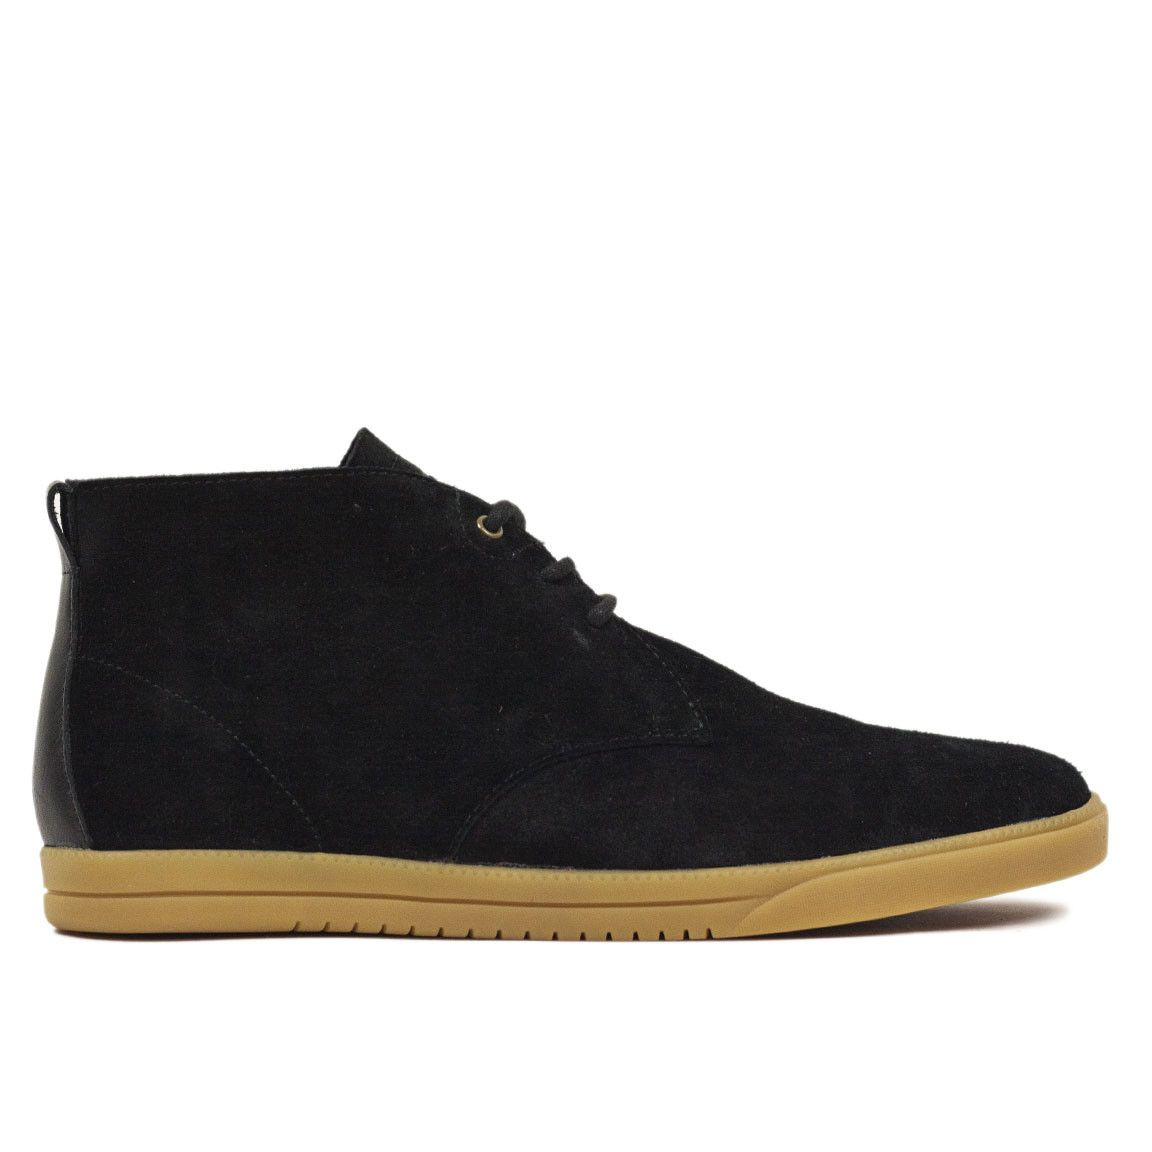 Clae Strayhorn Unlined - Black Suede Gum – Commonn